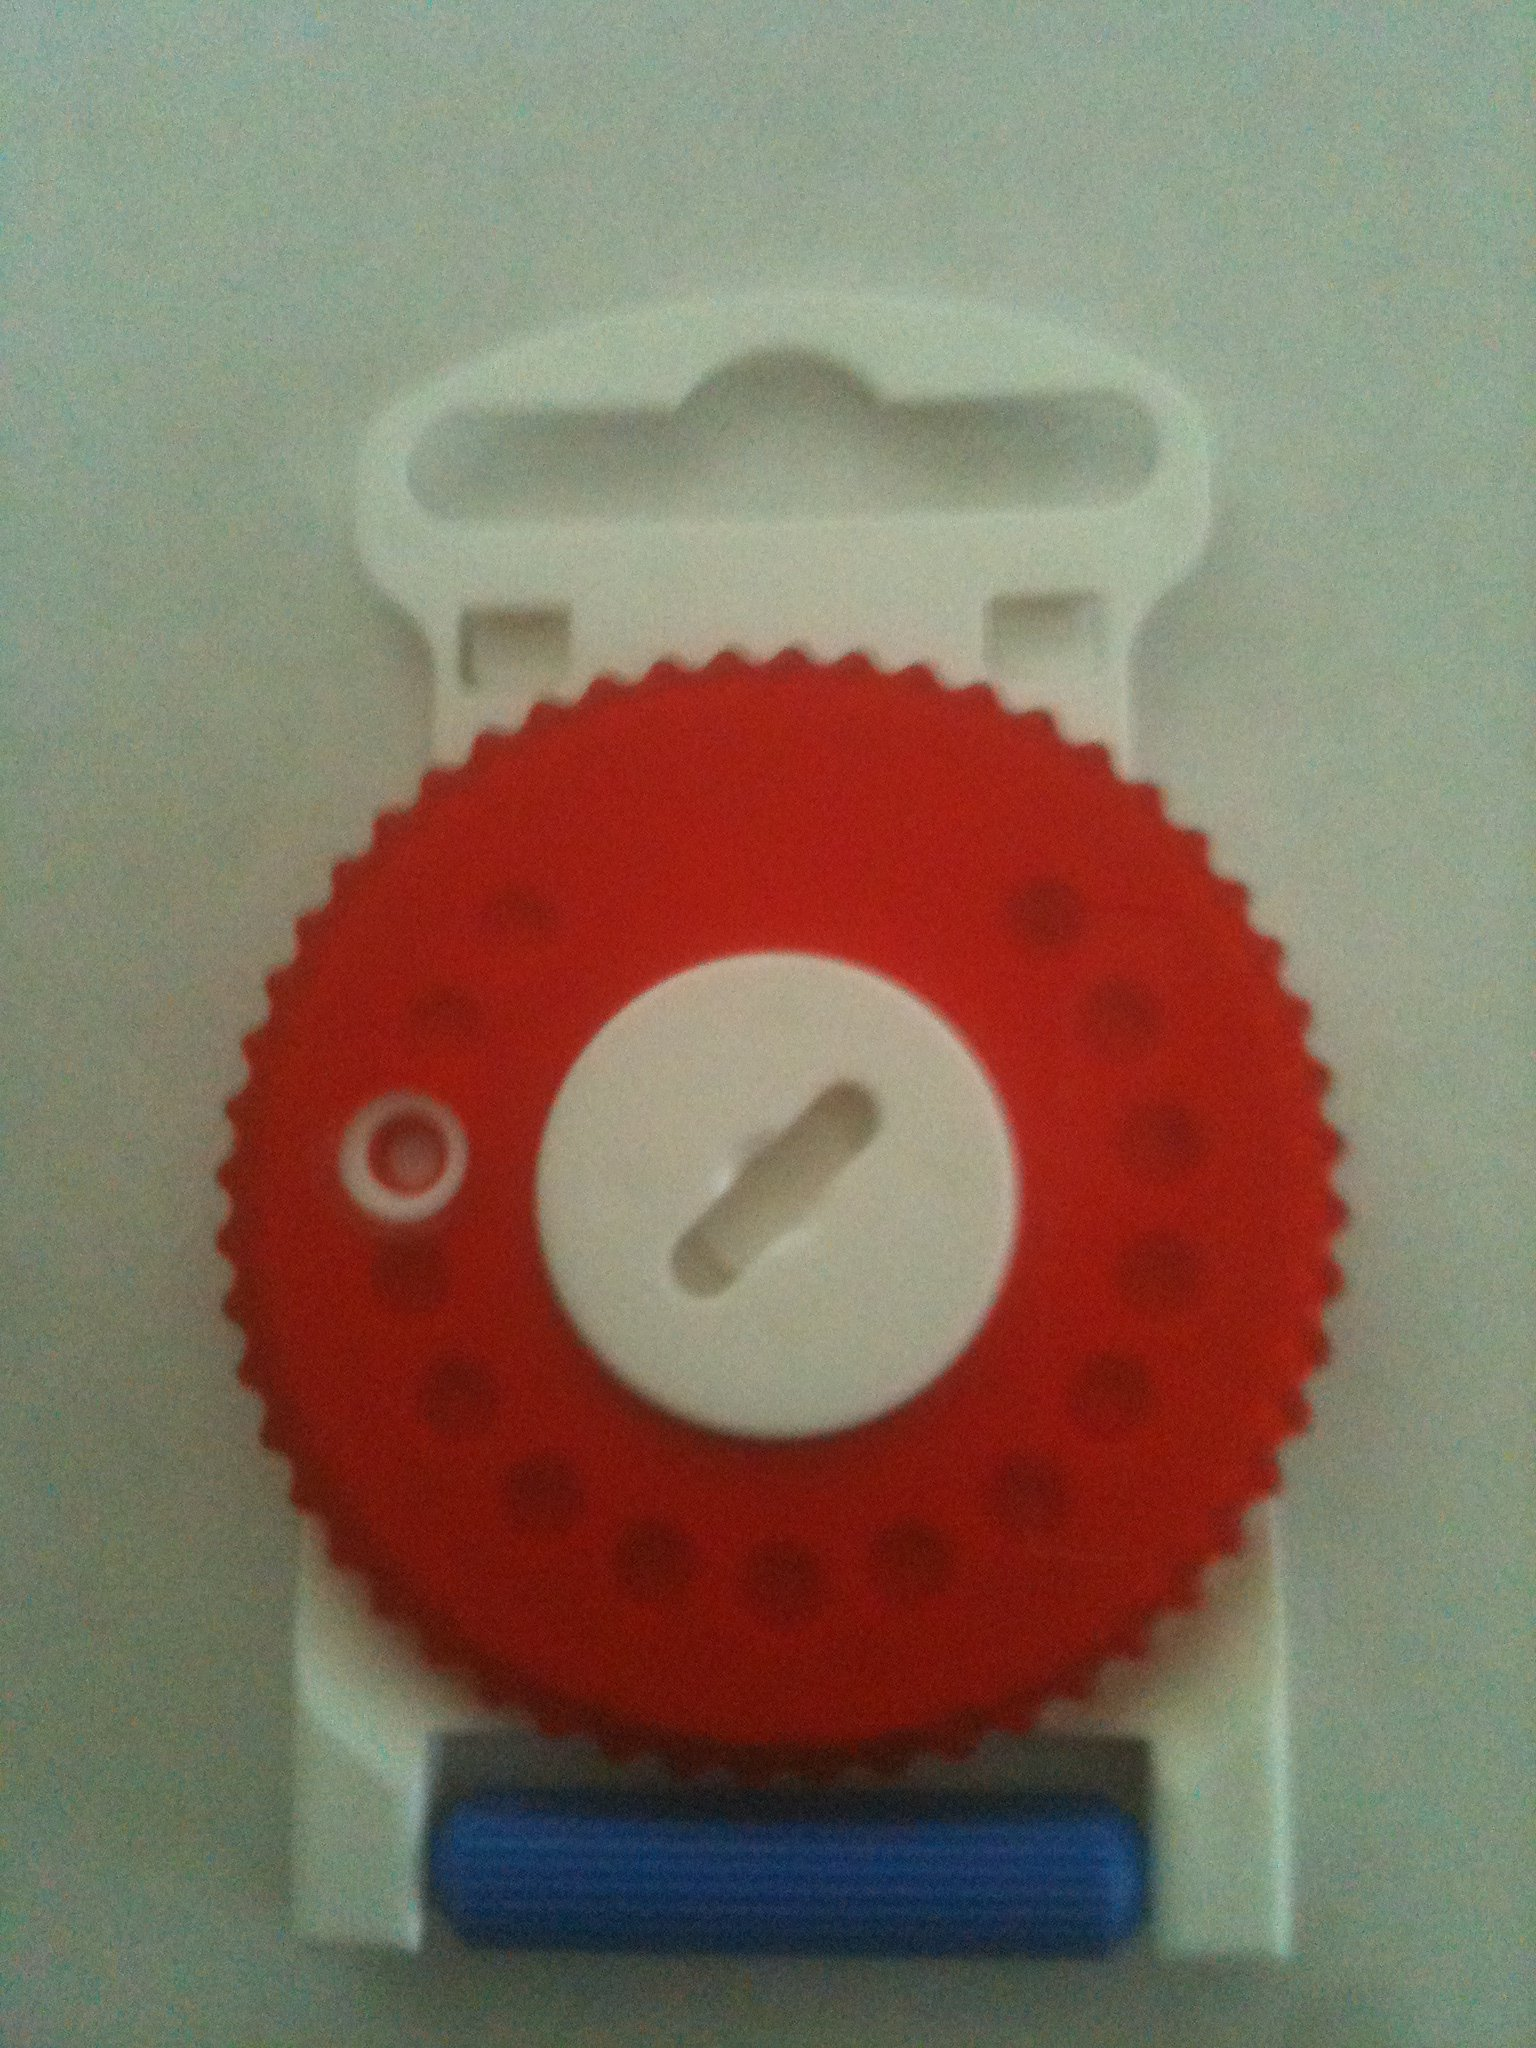 HF3 RED Wax Guard Wheel for Resound Hearing Aids - RIGHT SIDE RED